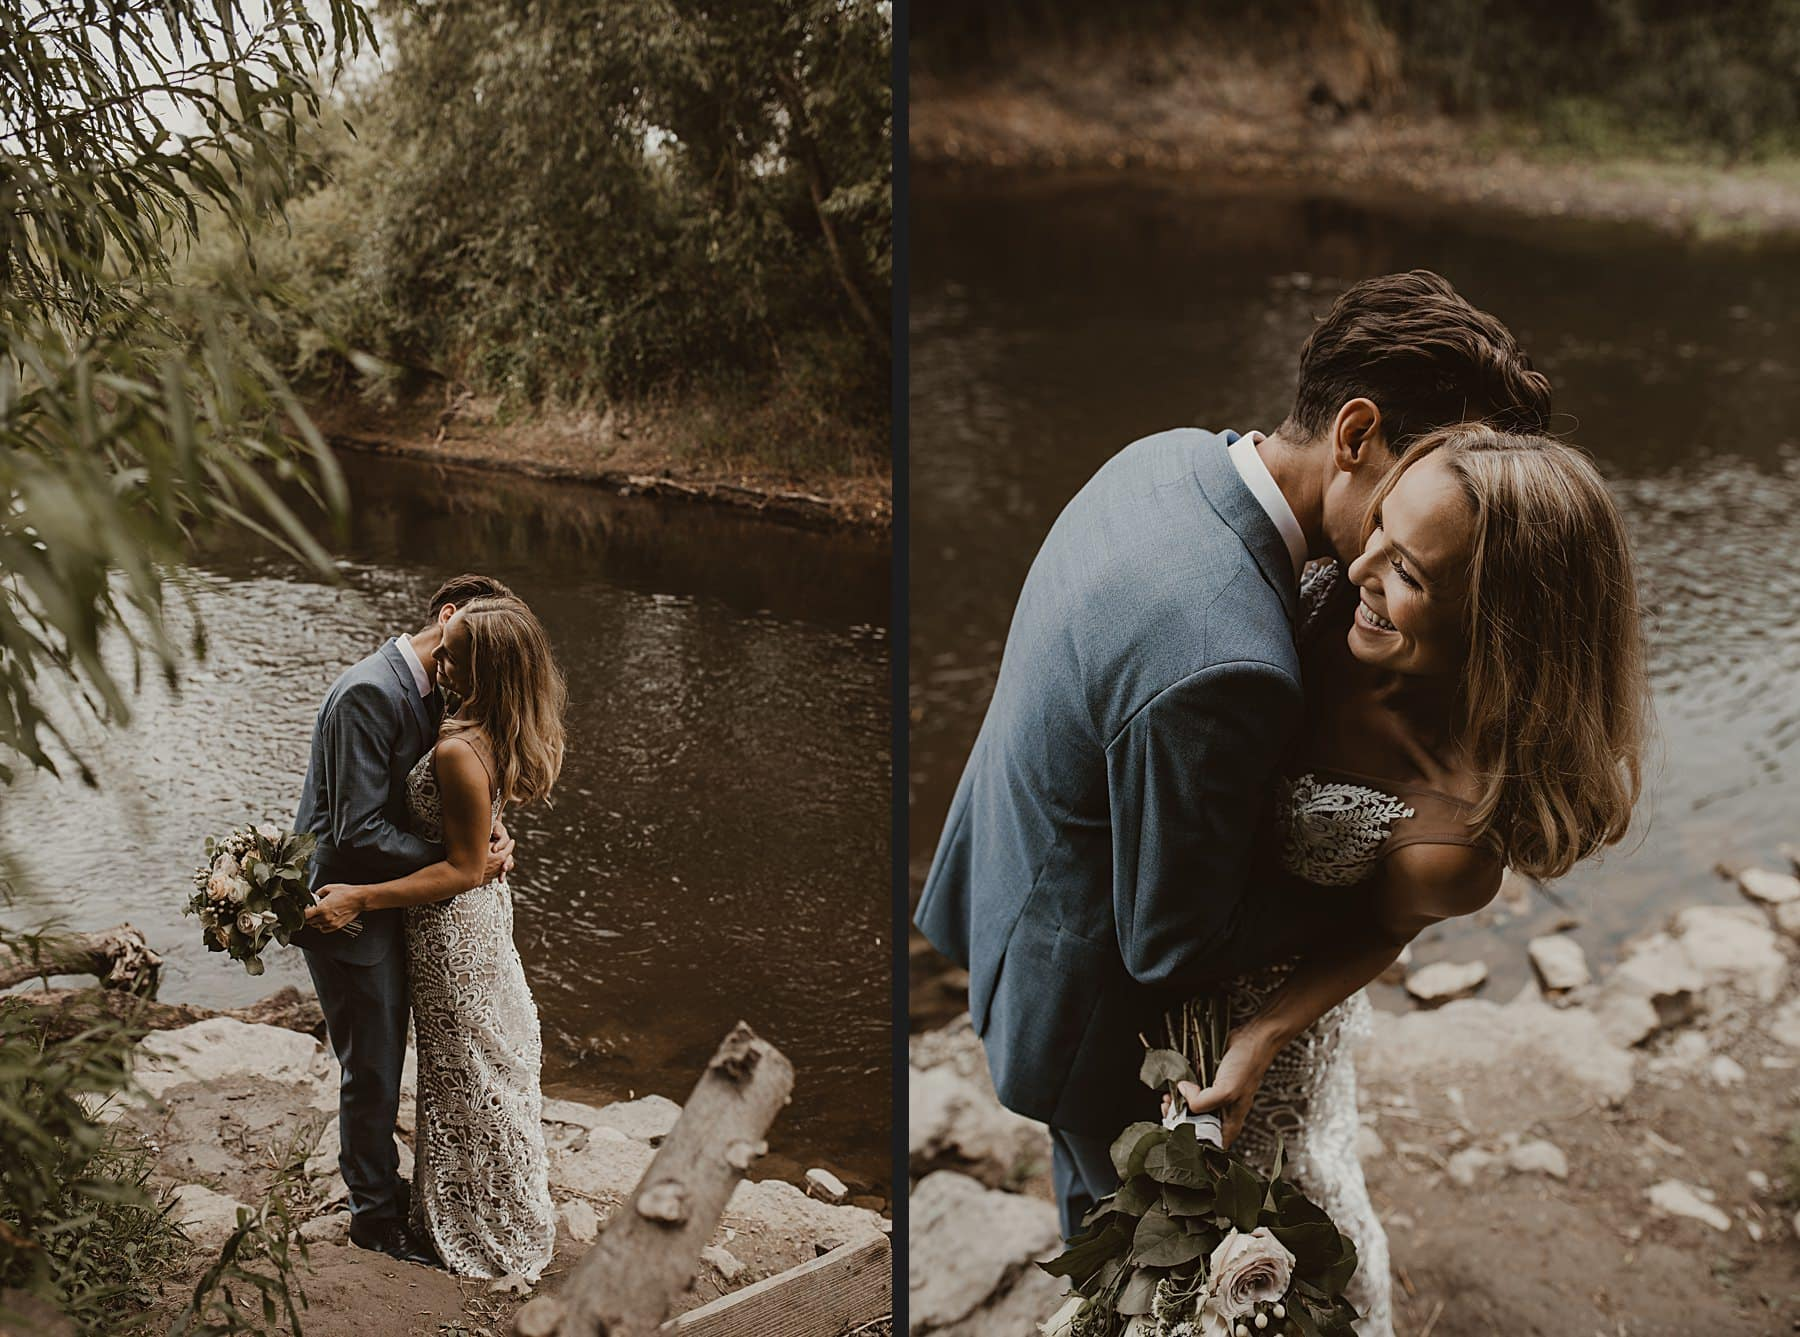 Couple laughing and cuddling by a river